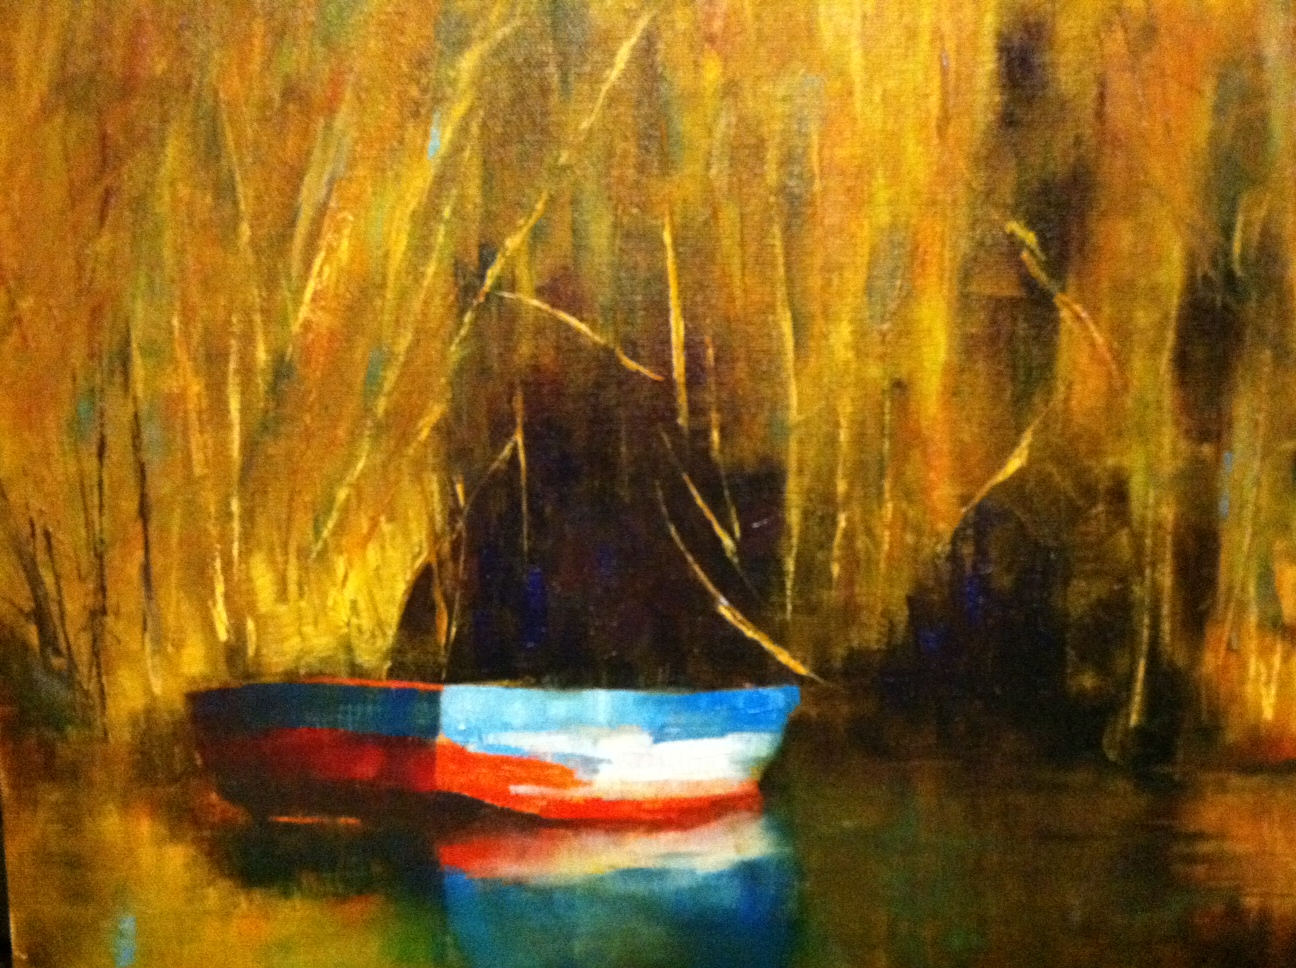 Boats in Reeds, Oil on linen, 12X16